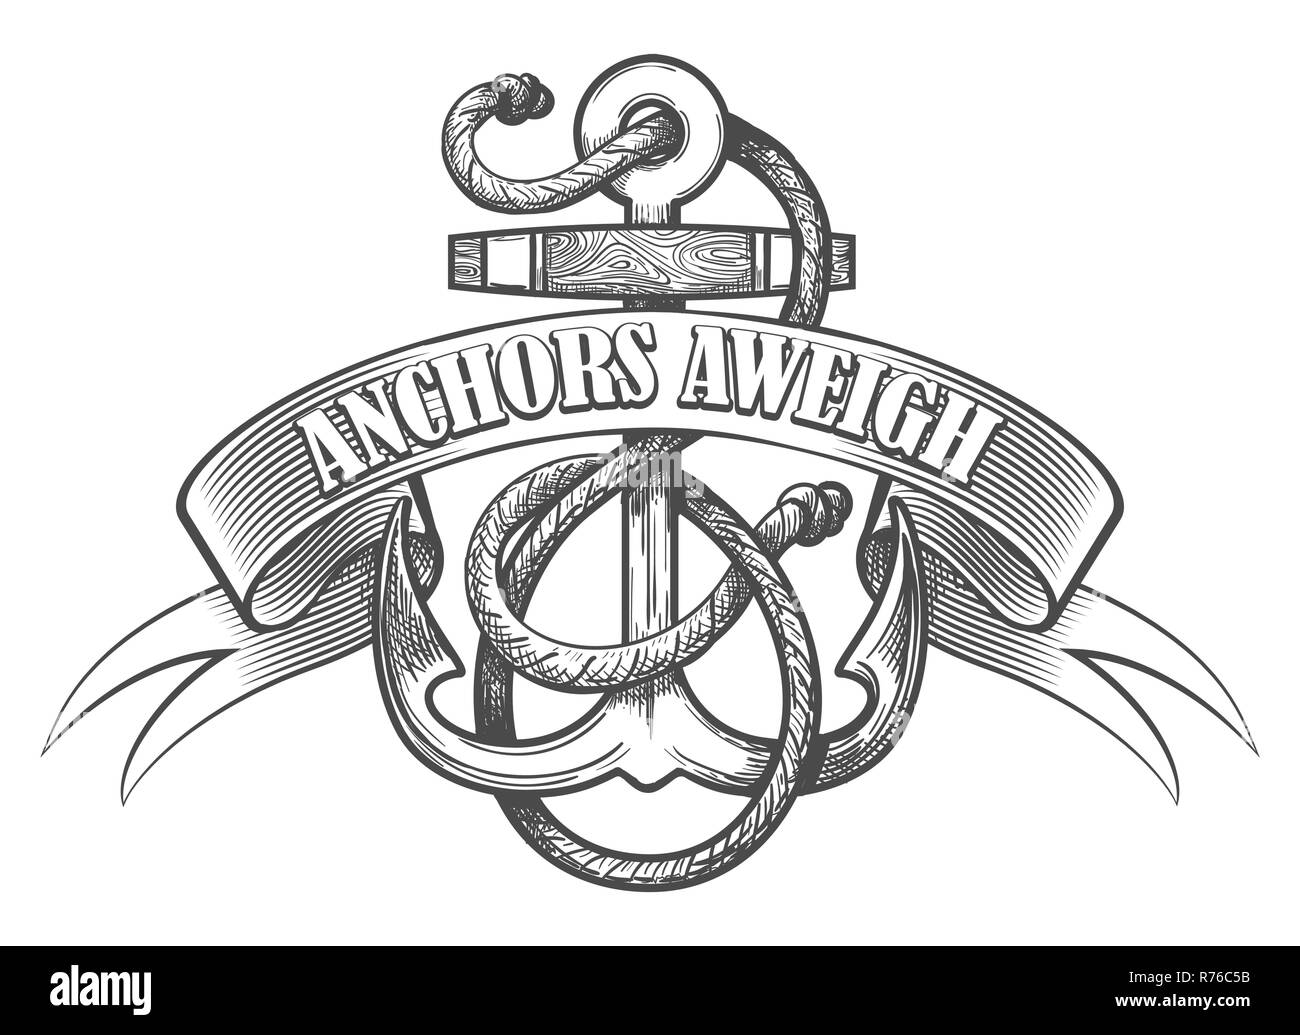 Nautical Anchor In Ropes And Ribbon With Wording Anchors Aweigh